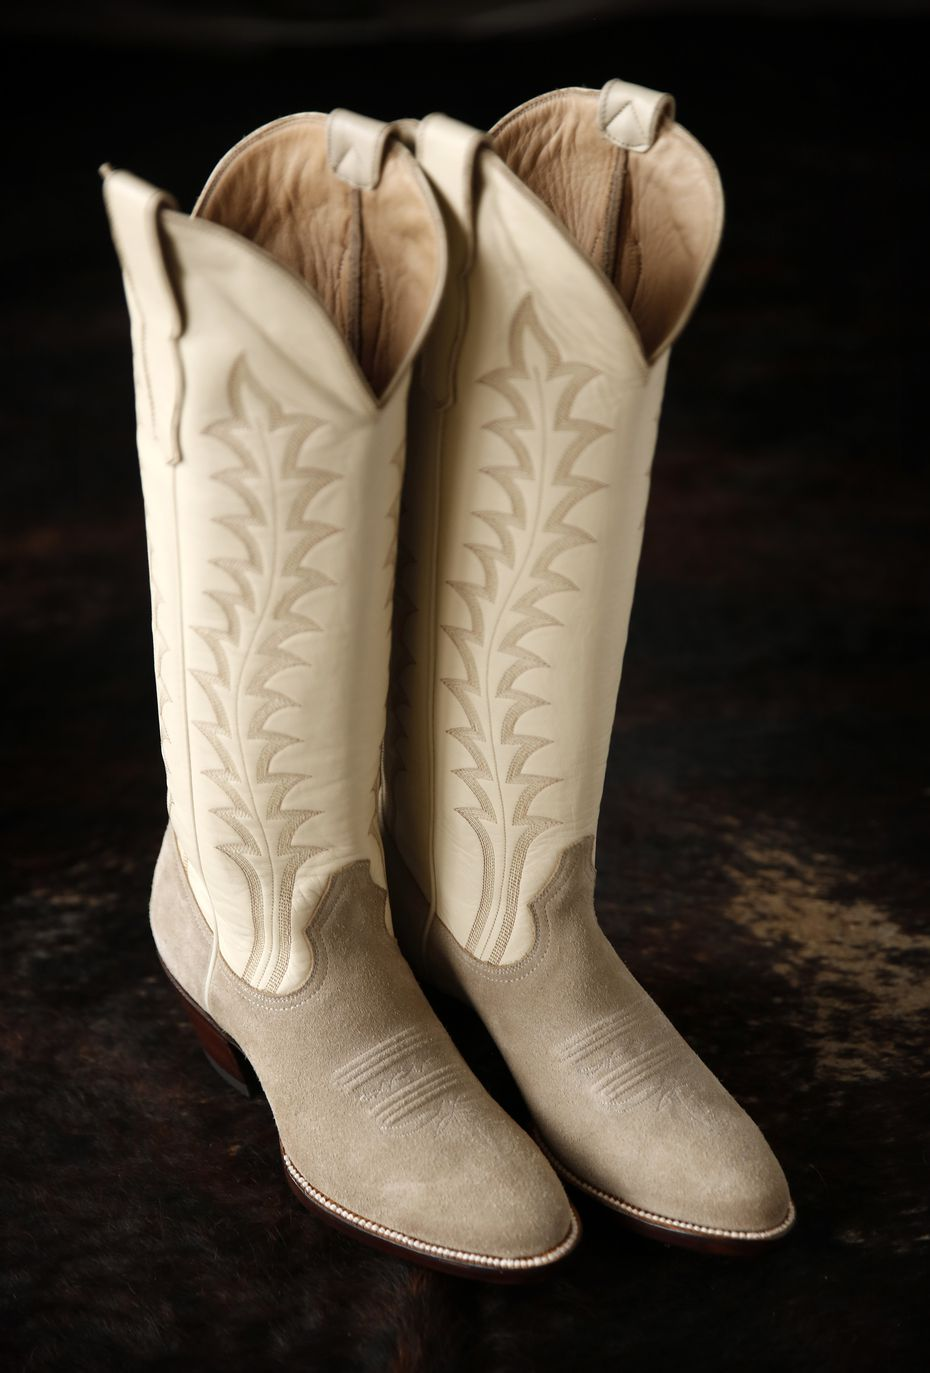 Lizzy Chesnut Bentley's favorite boots are the Amarillo, shown here.